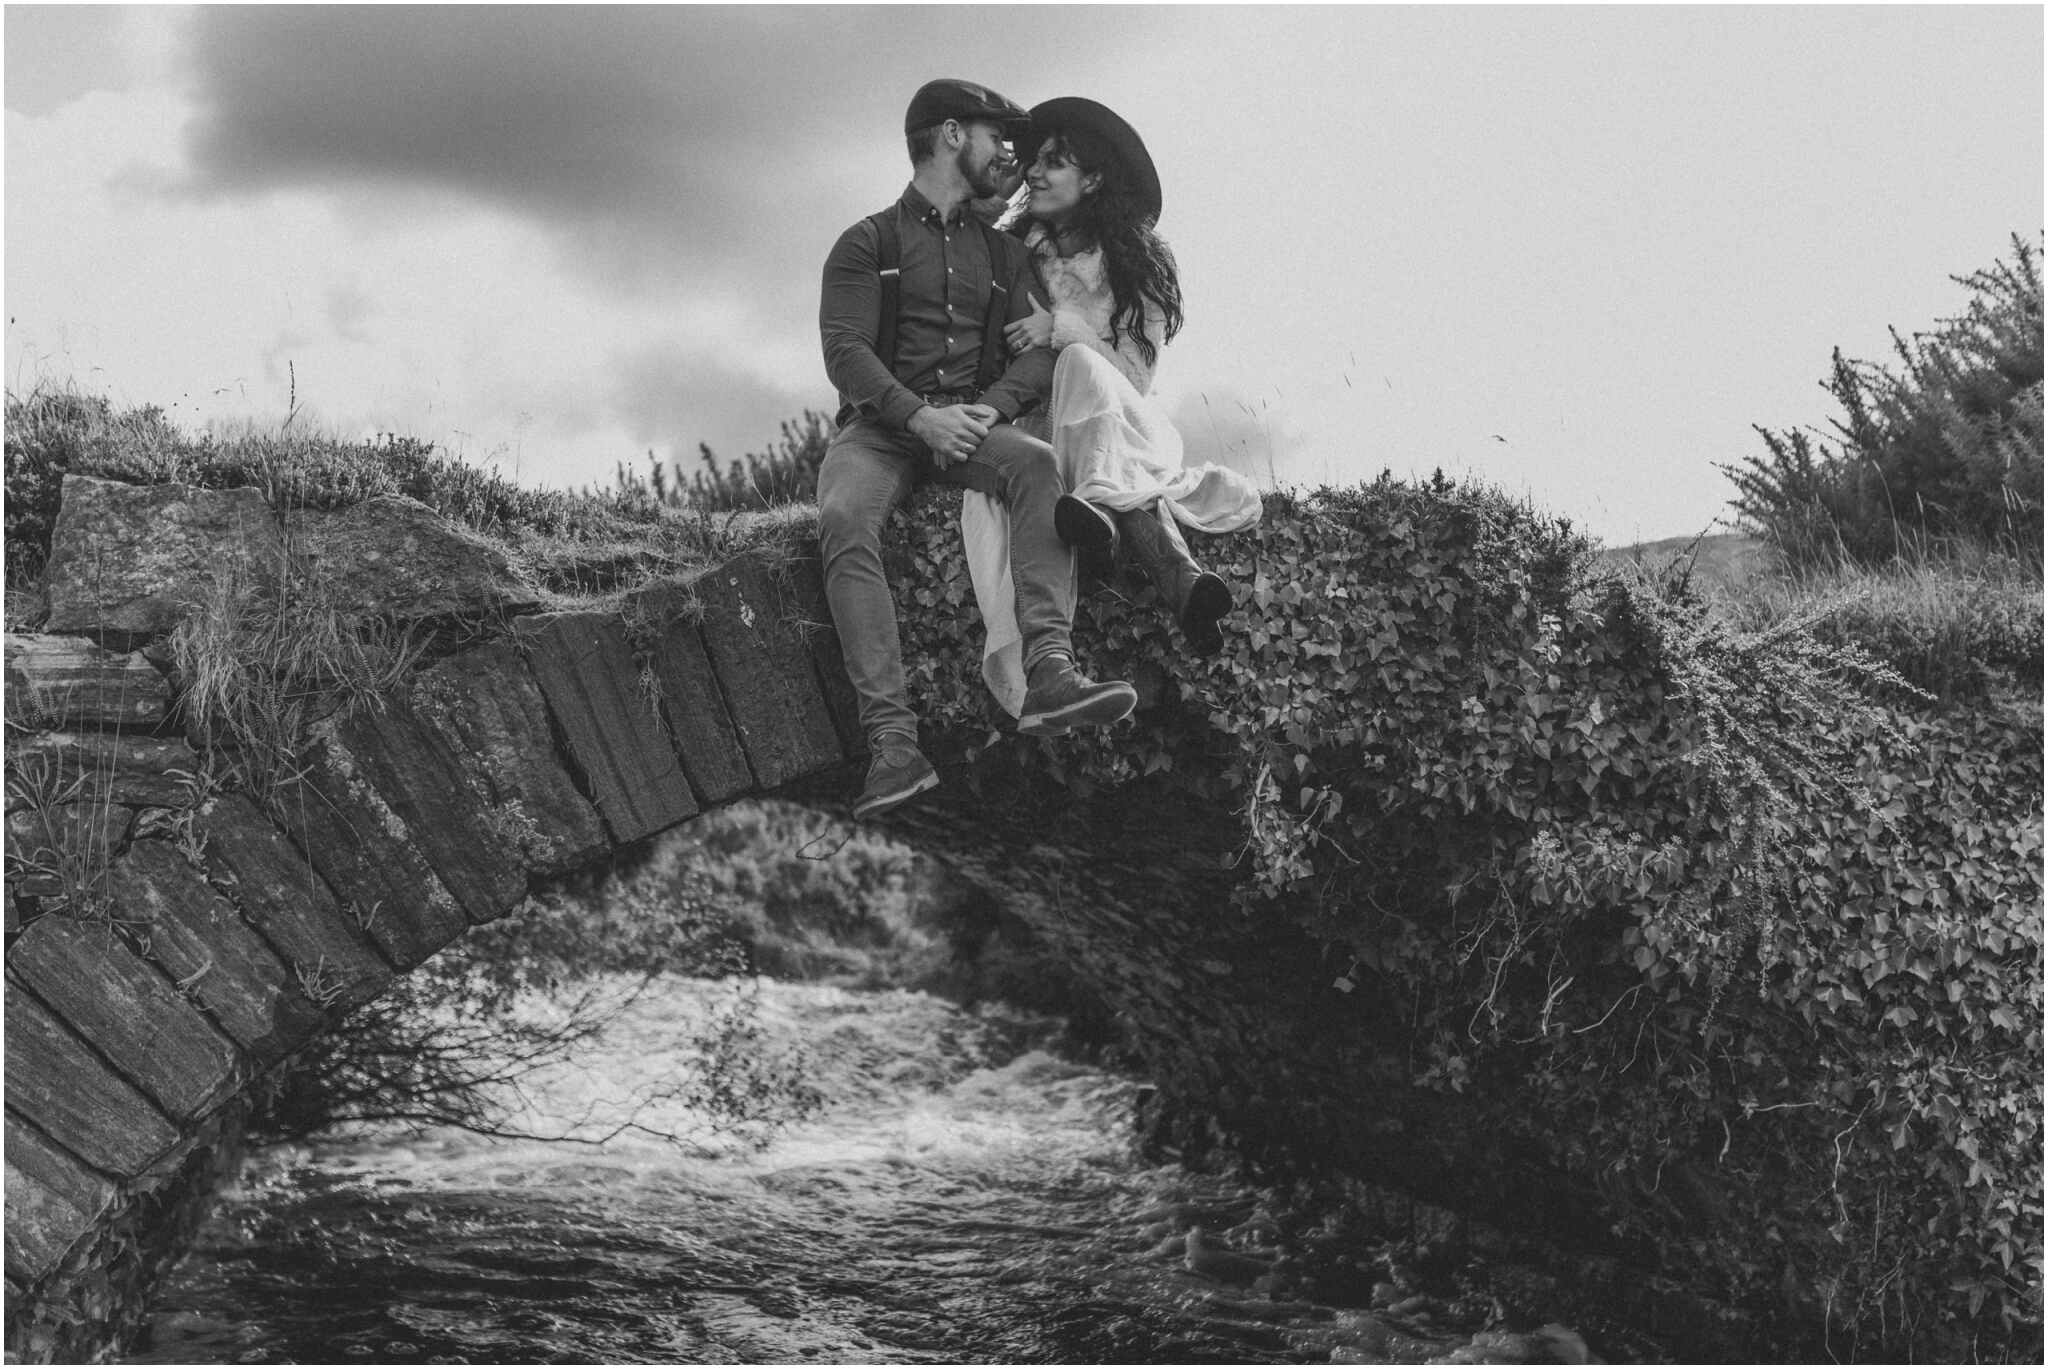 Rachel + David - Hiking Elopement in Muckish Mountain and Poisoned Glen, Donegal 25